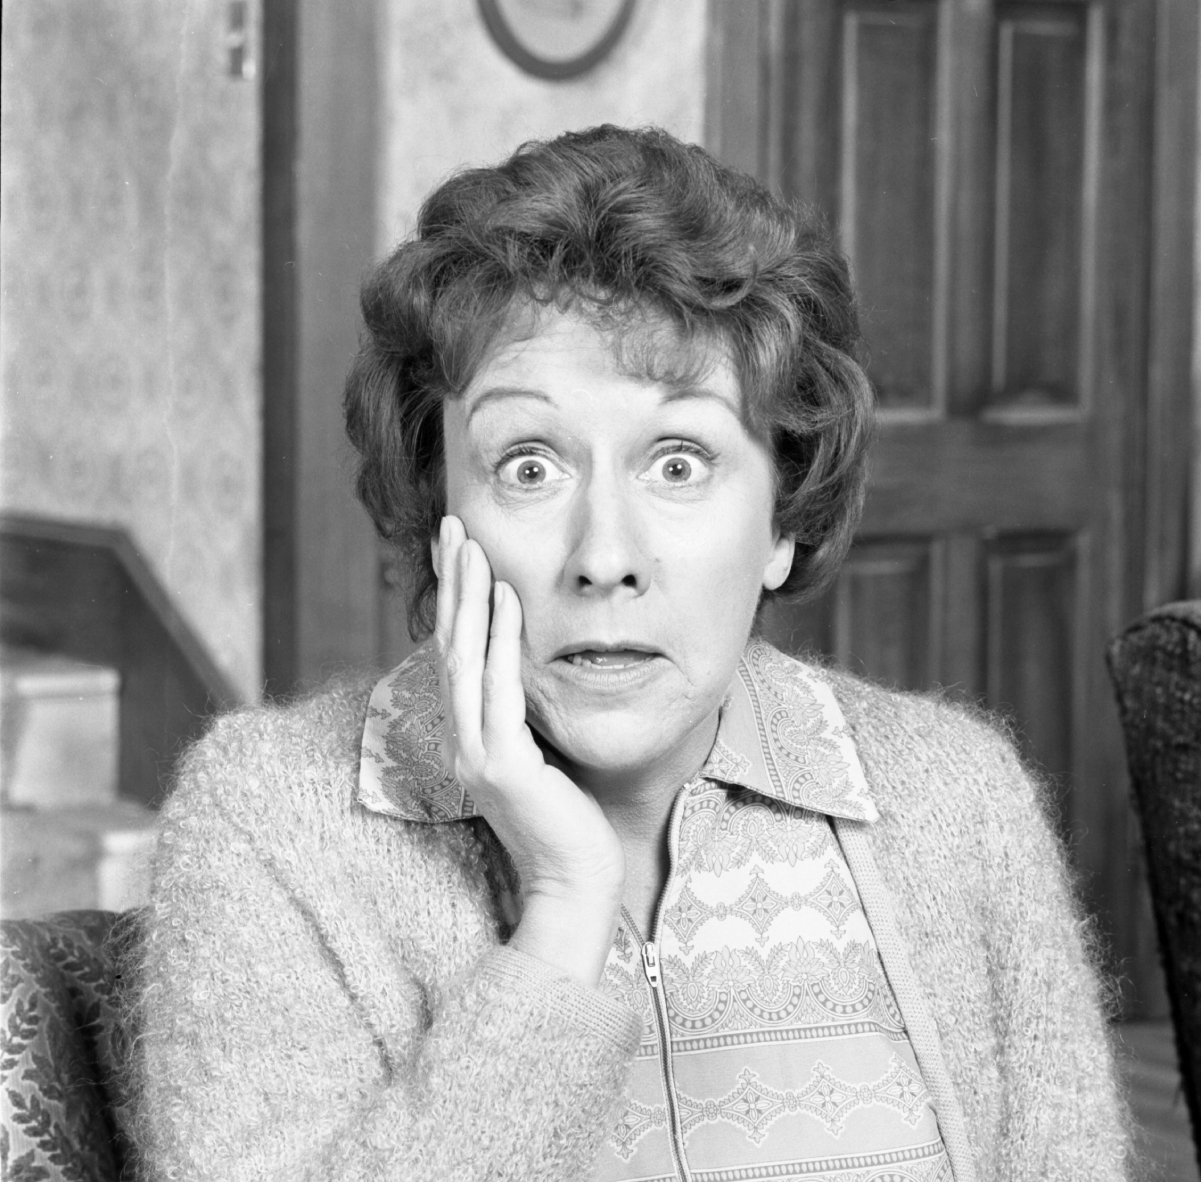 Actor Jean Stapleton strikes a surprised pose, hand on cheek, for a photo as 'All in the Family's Edith Bunker